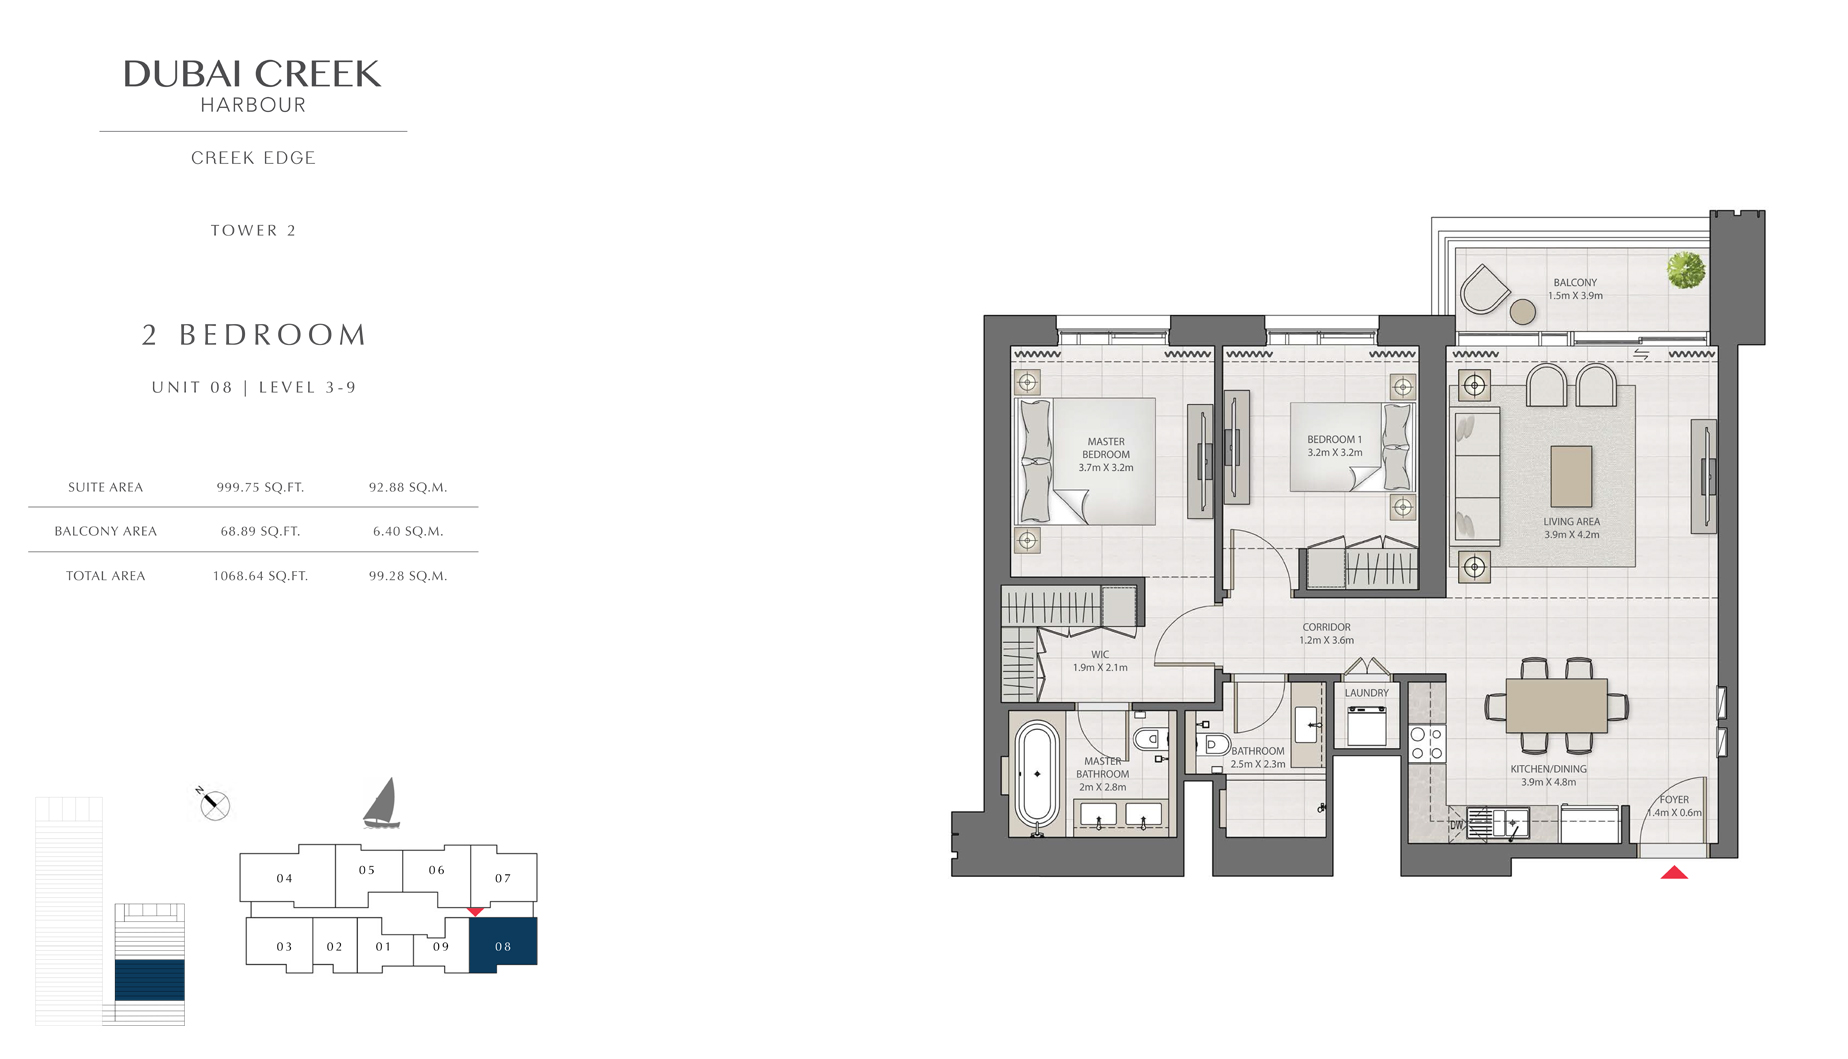 2 Bedroom Tower 2 Unit 08 Level 3-9 Size 1068 sq.ft